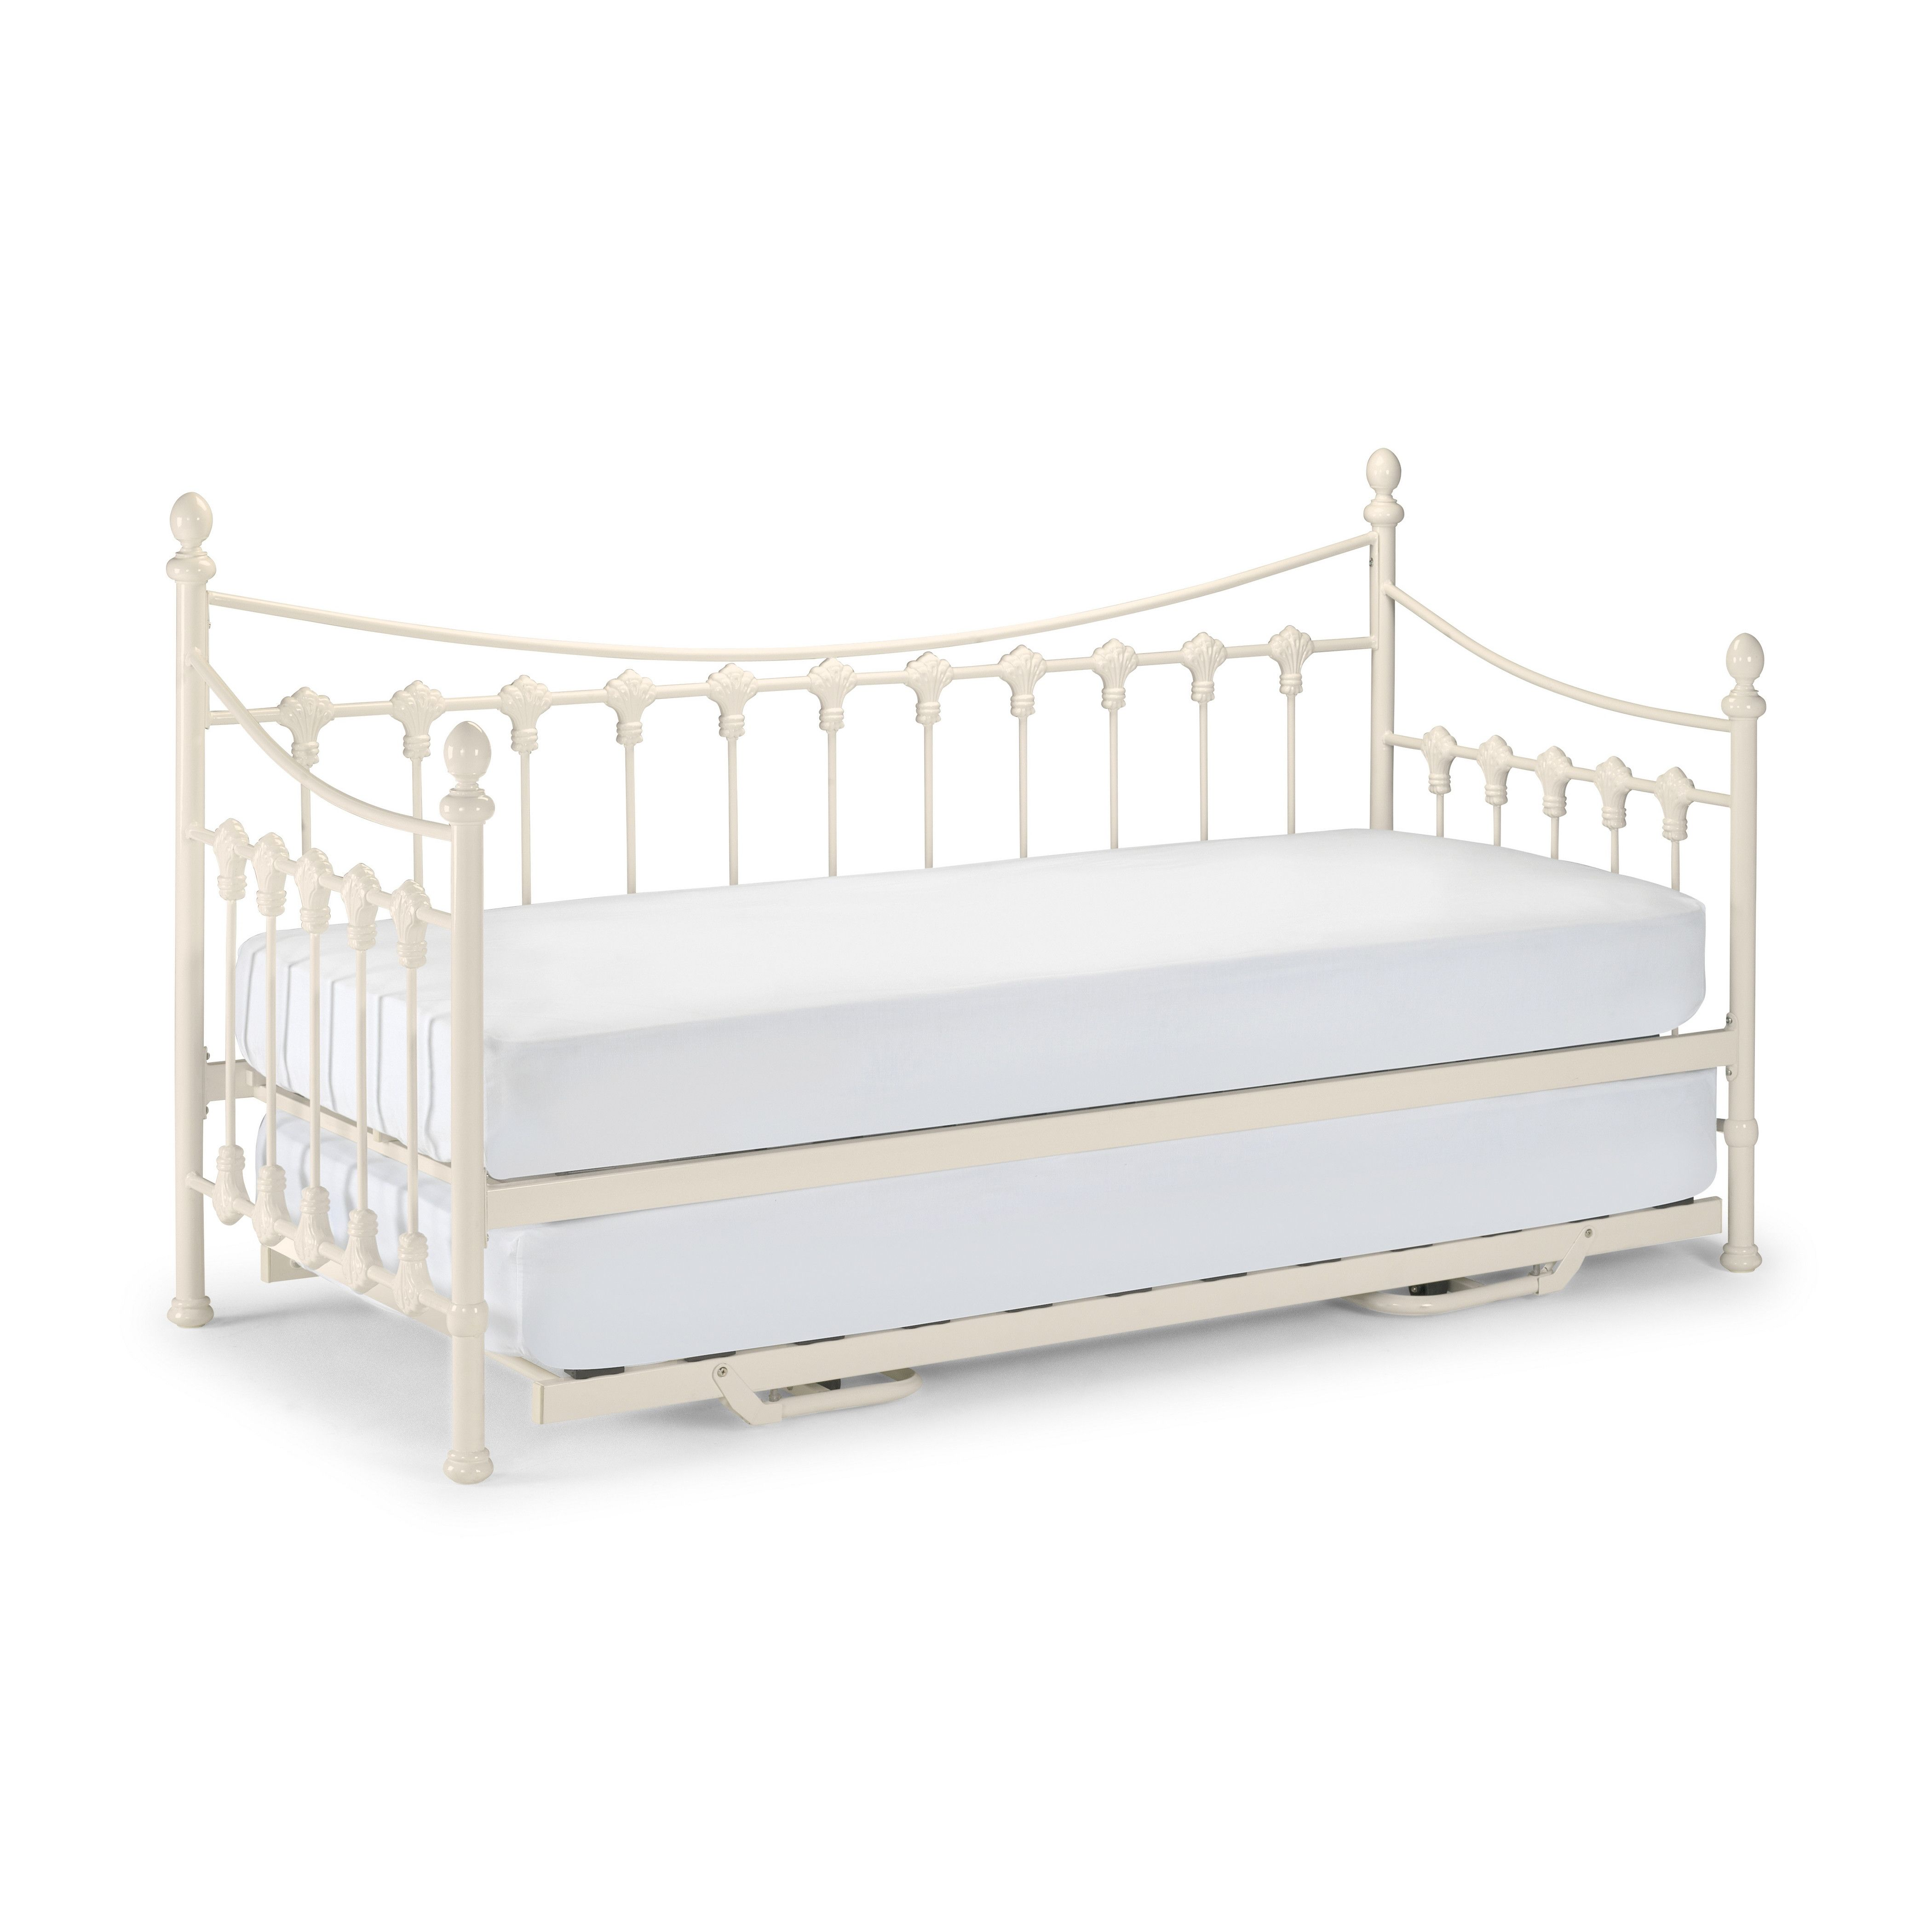 All Home Bayeaux Daybed with Trundle Single bed frame